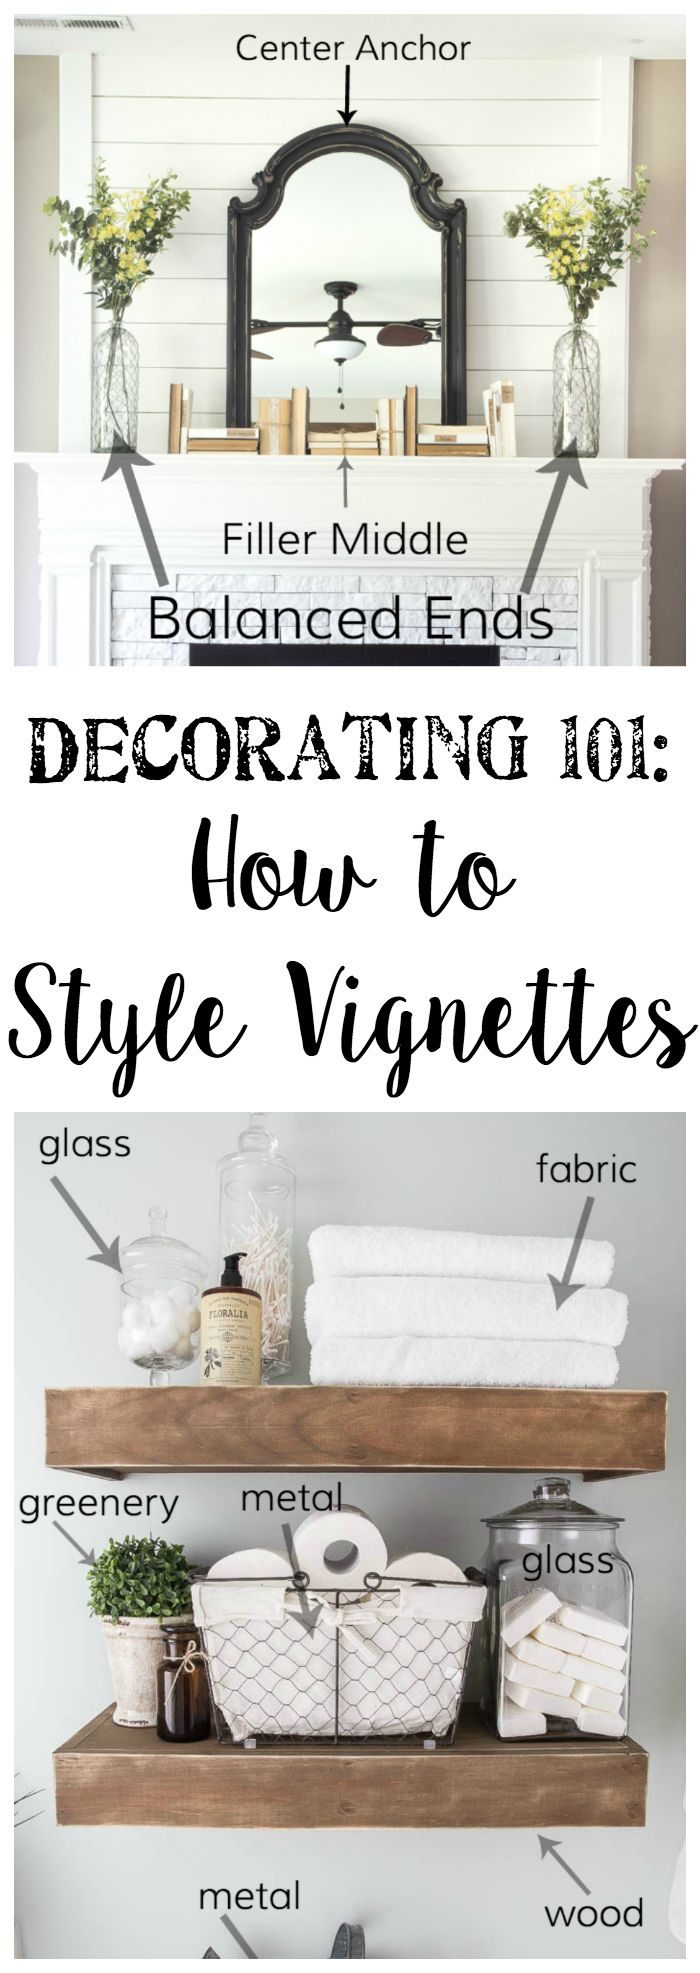 Best 25 Decorating tips ideas only on Pinterest Home decor